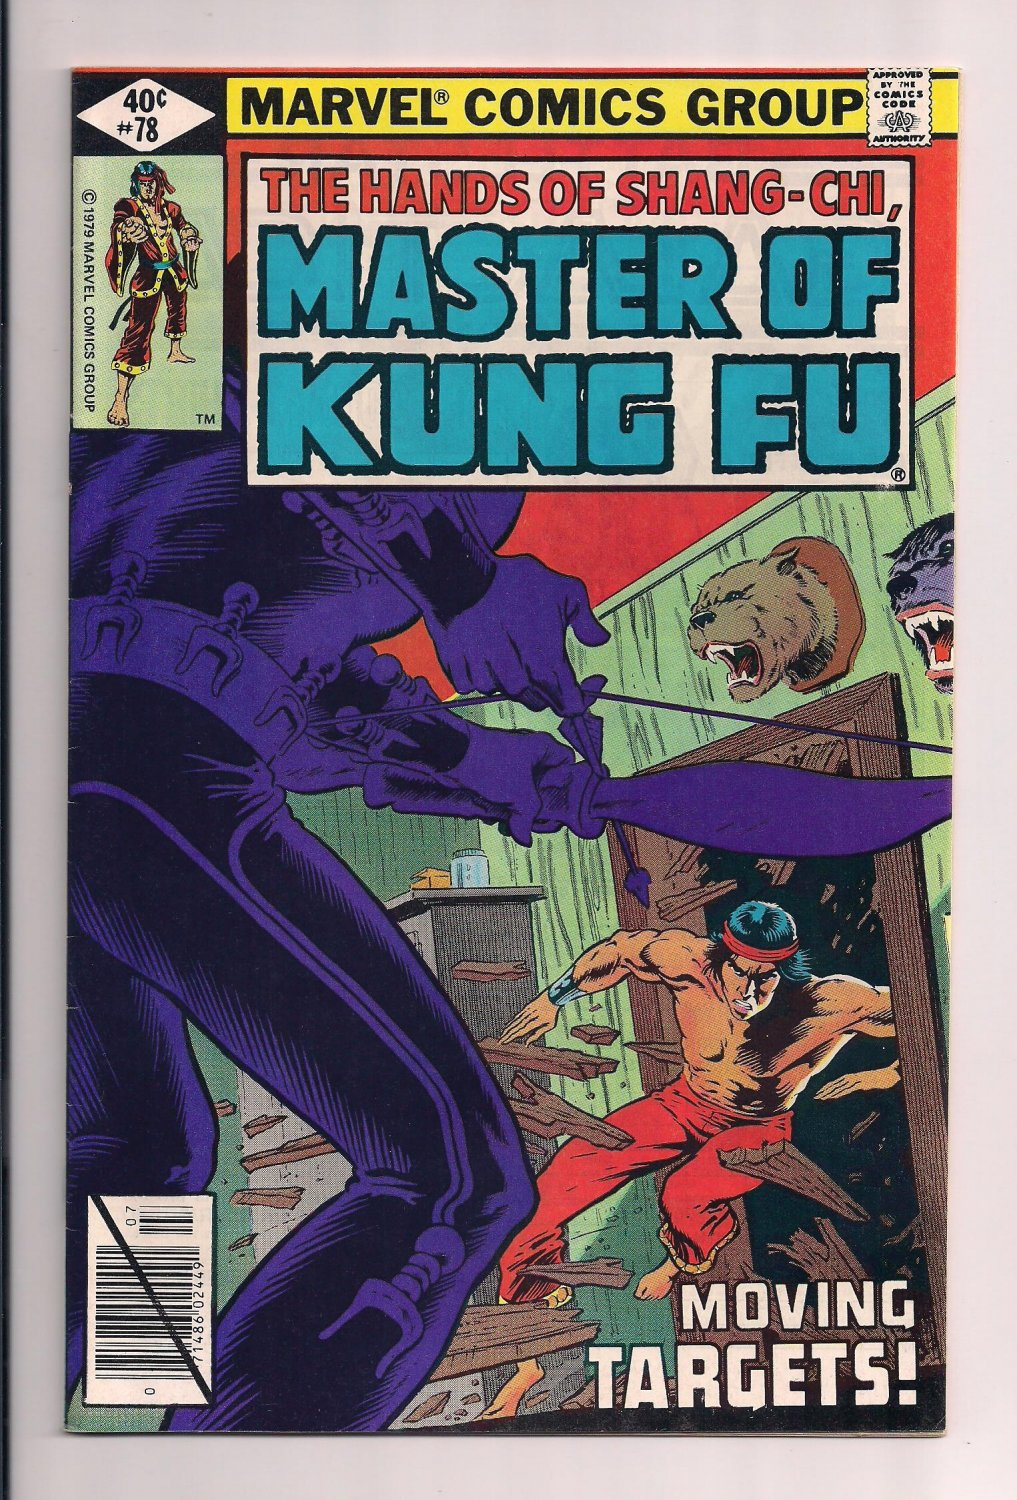 Shang-Chi, Master of Kung Fu #78 a (1979) near mint condition comic